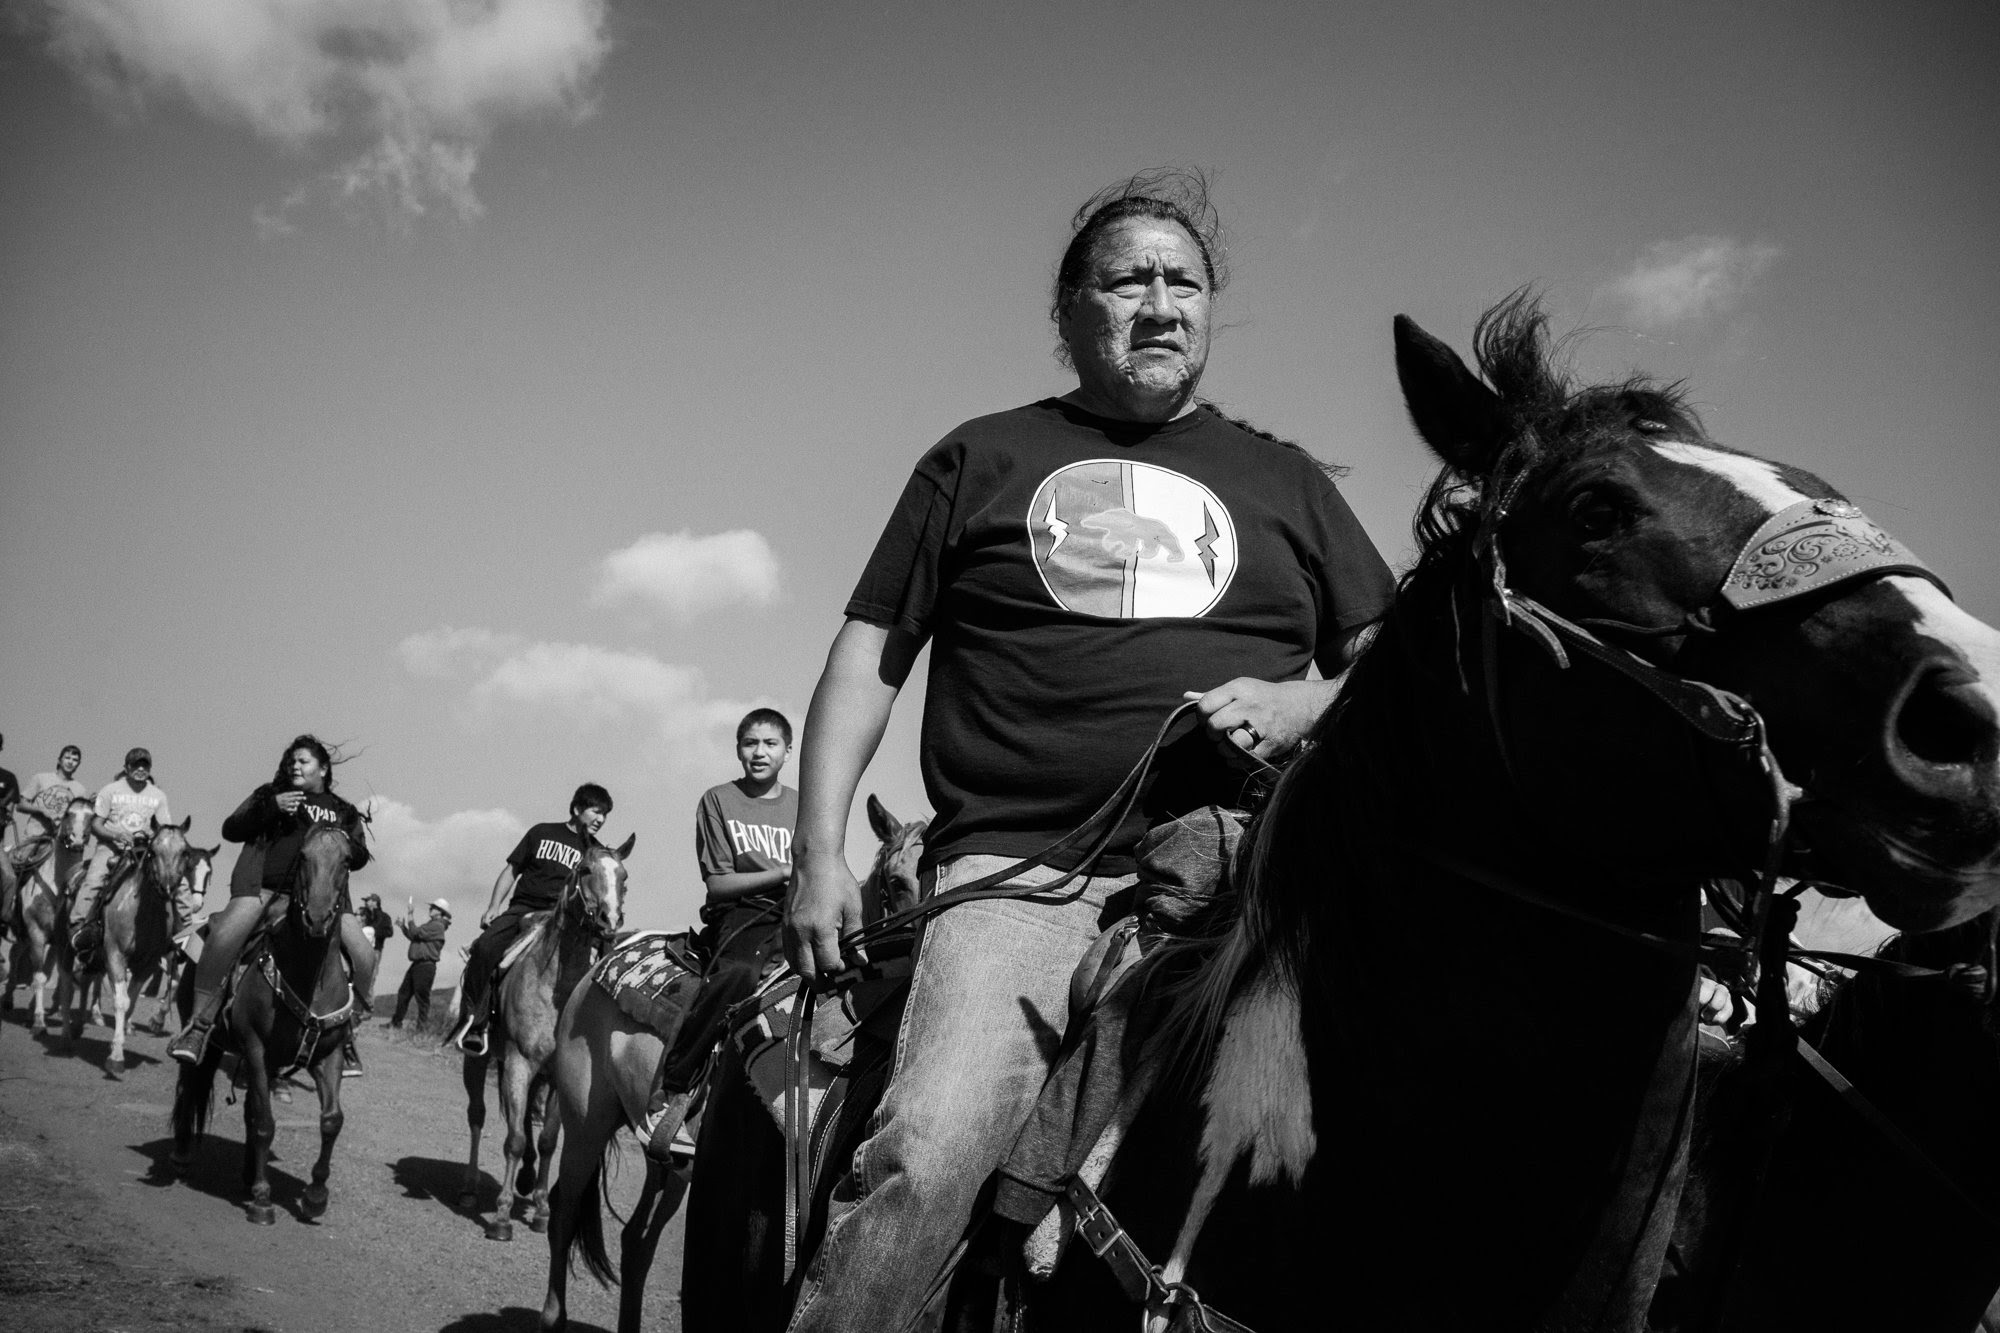 """The result of Annabelle Marcovici's photos at the Standing Rock encampment """"is a portrait of everyday life under extraordinary circumstances, behind the public rallies and ceremonies. . . . ."""" (Credit: Annabelle Marcovici)"""